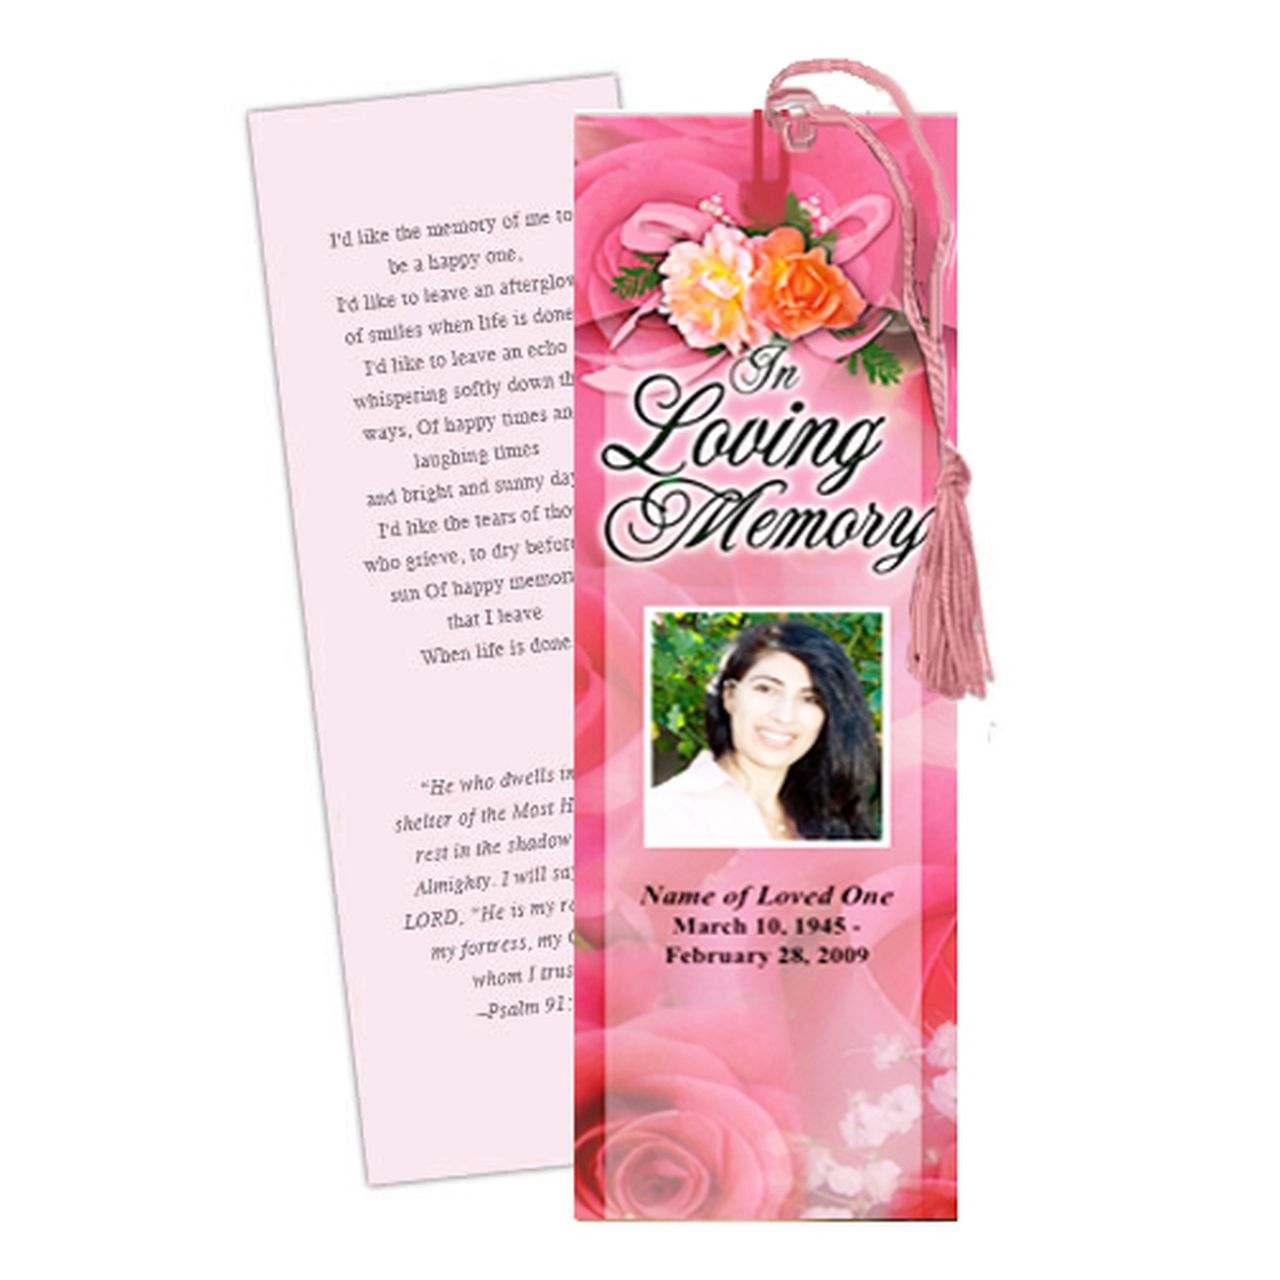 009 Impressive In Loving Memory Bookmark Template Free Download Sample Full